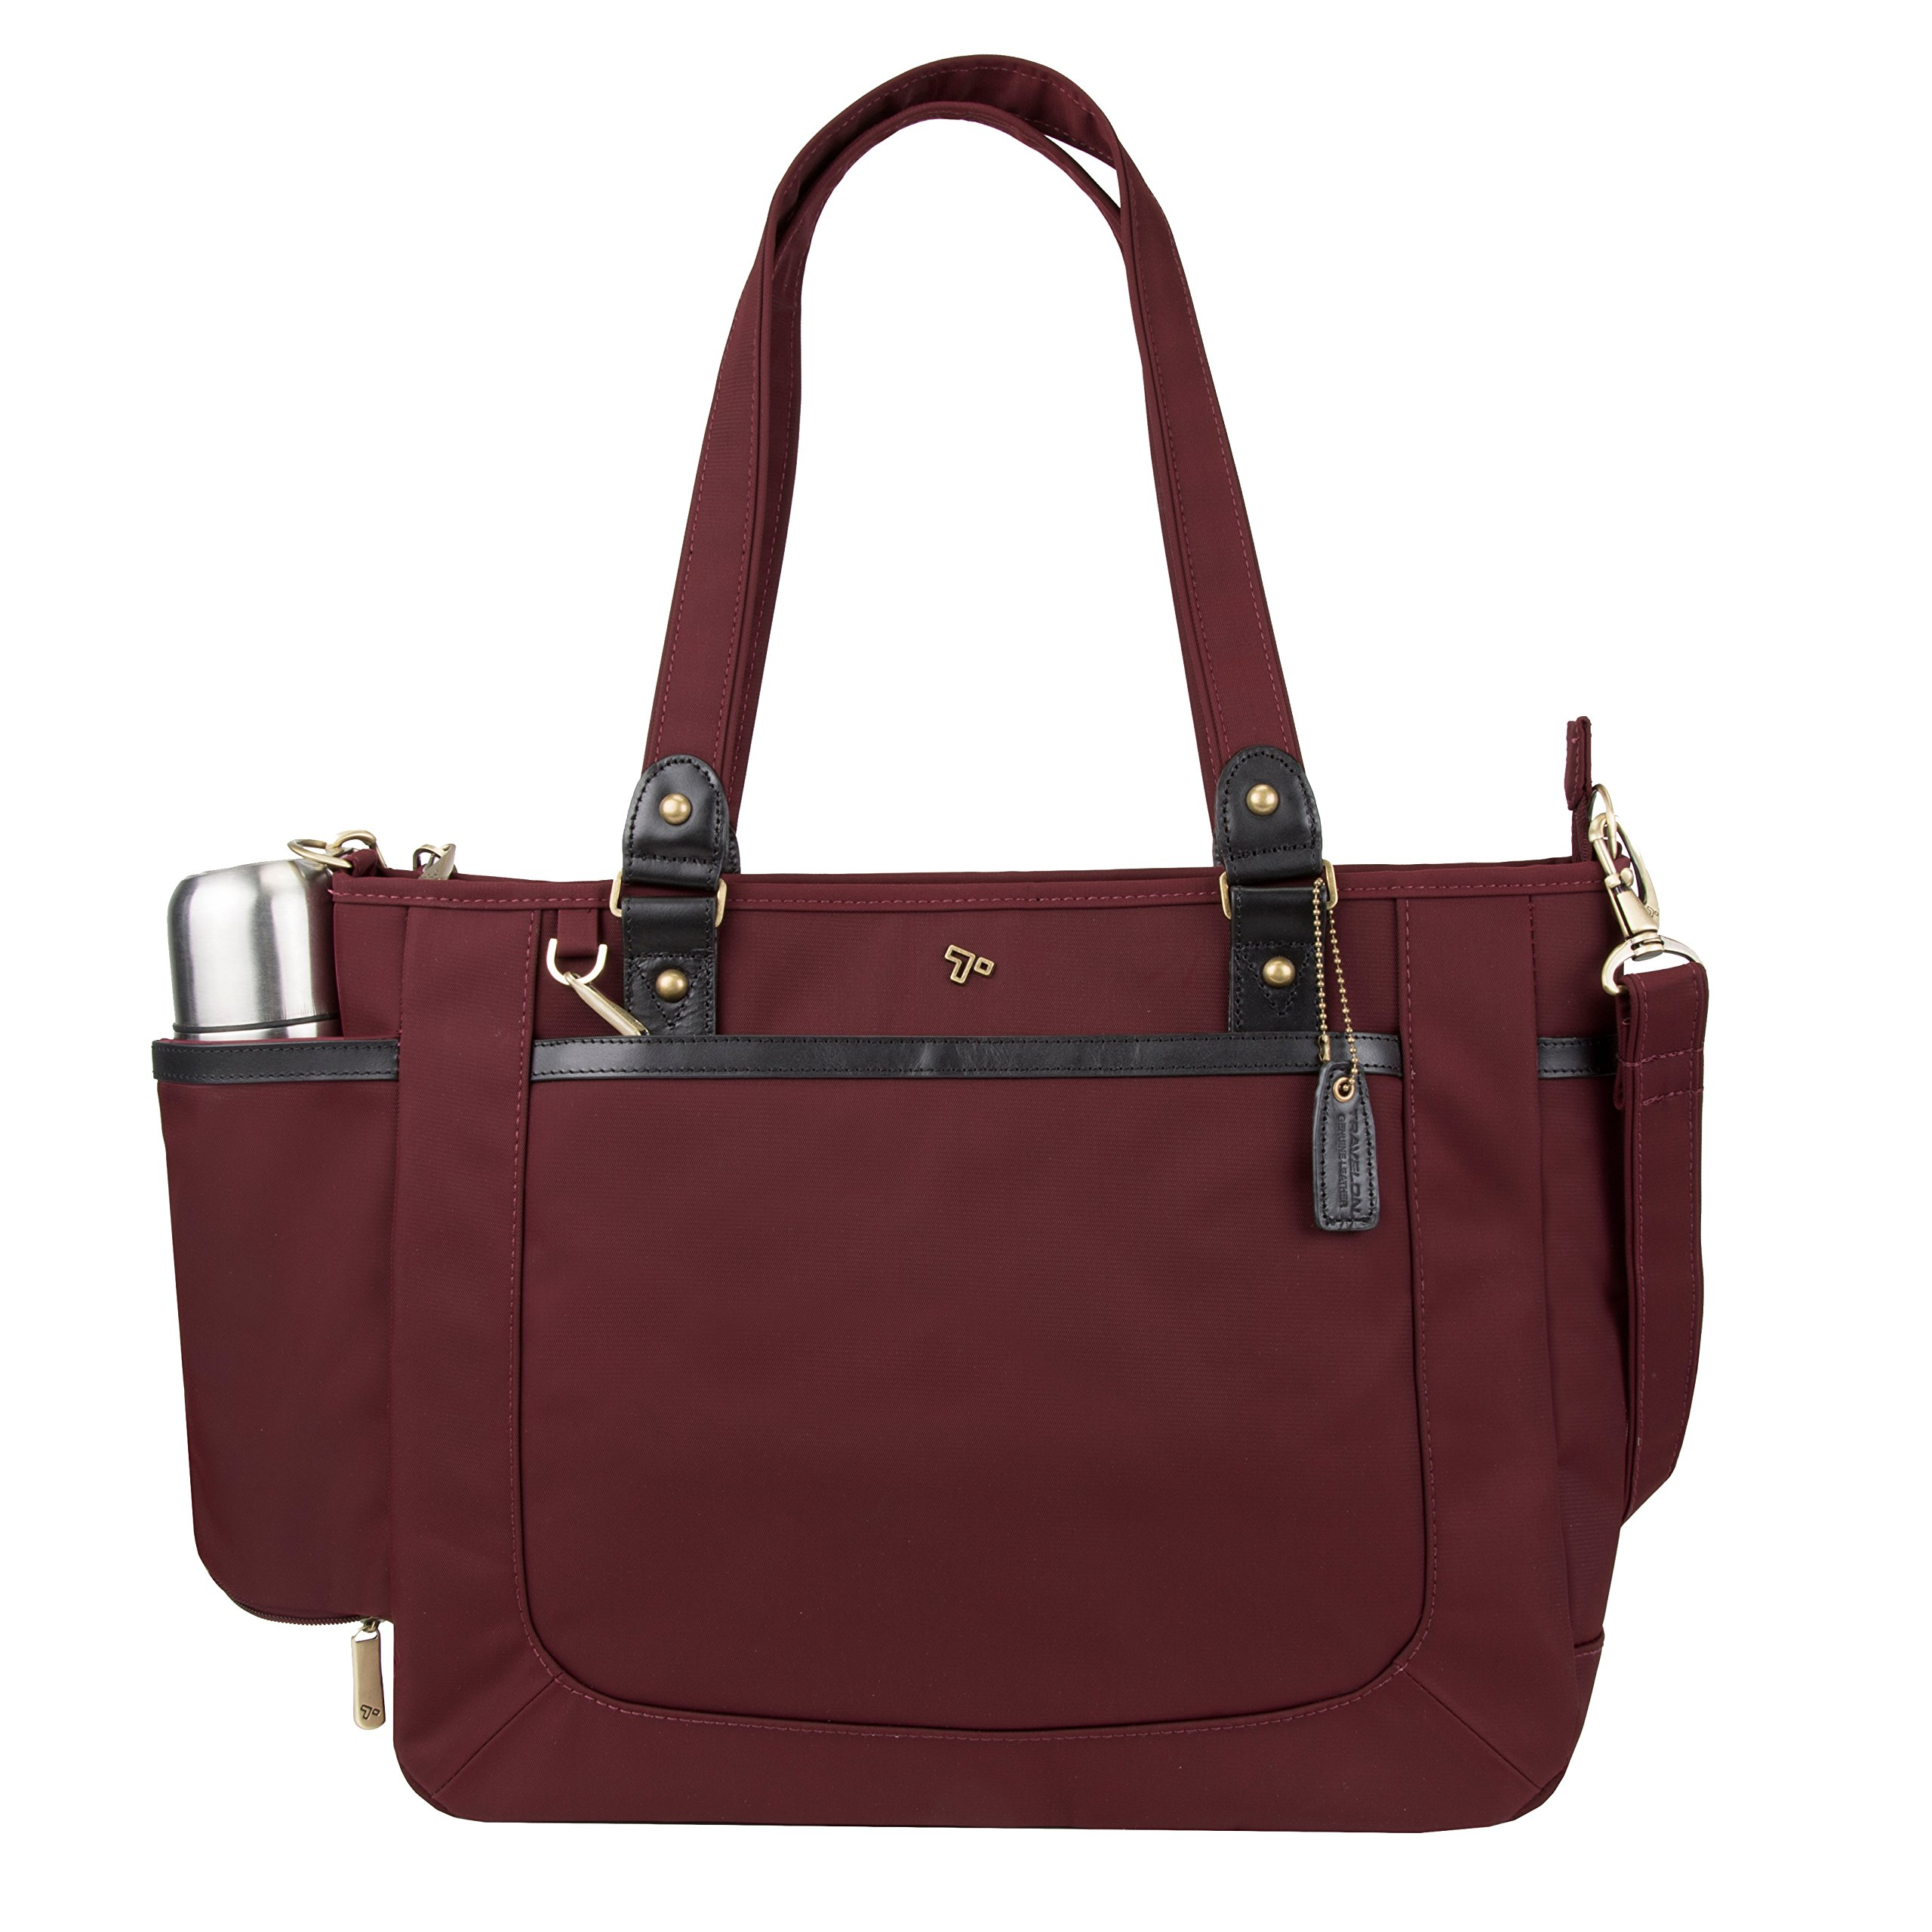 Travelon Anti-Theft Ltd Tote Bag, Wine